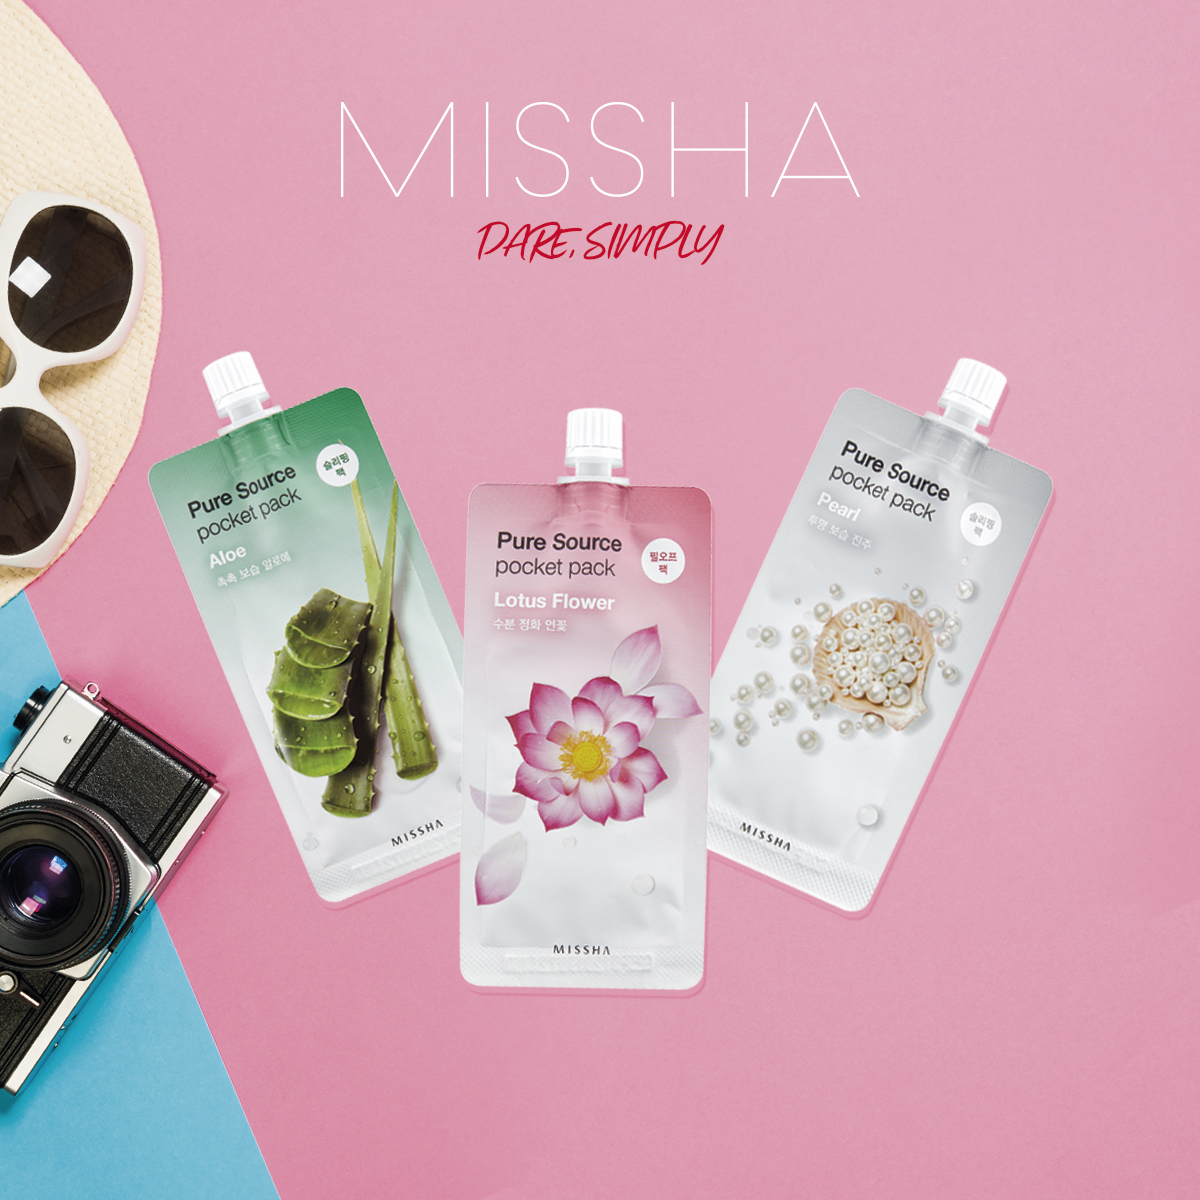 Missha-Pure-source